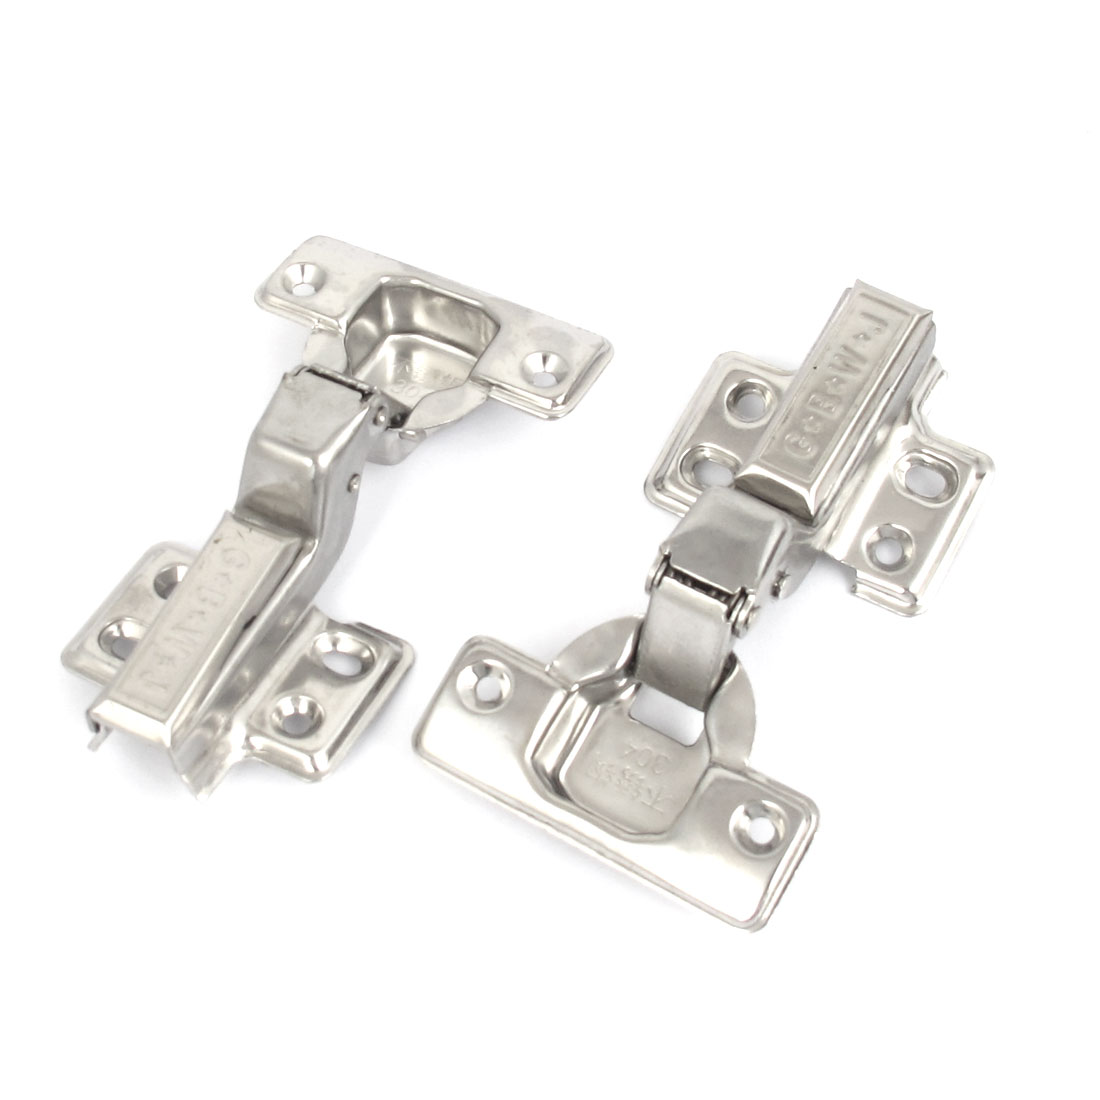 Uxcell 2pcs Kitchen Cabinet Hydraulic Self Close Concealed ...